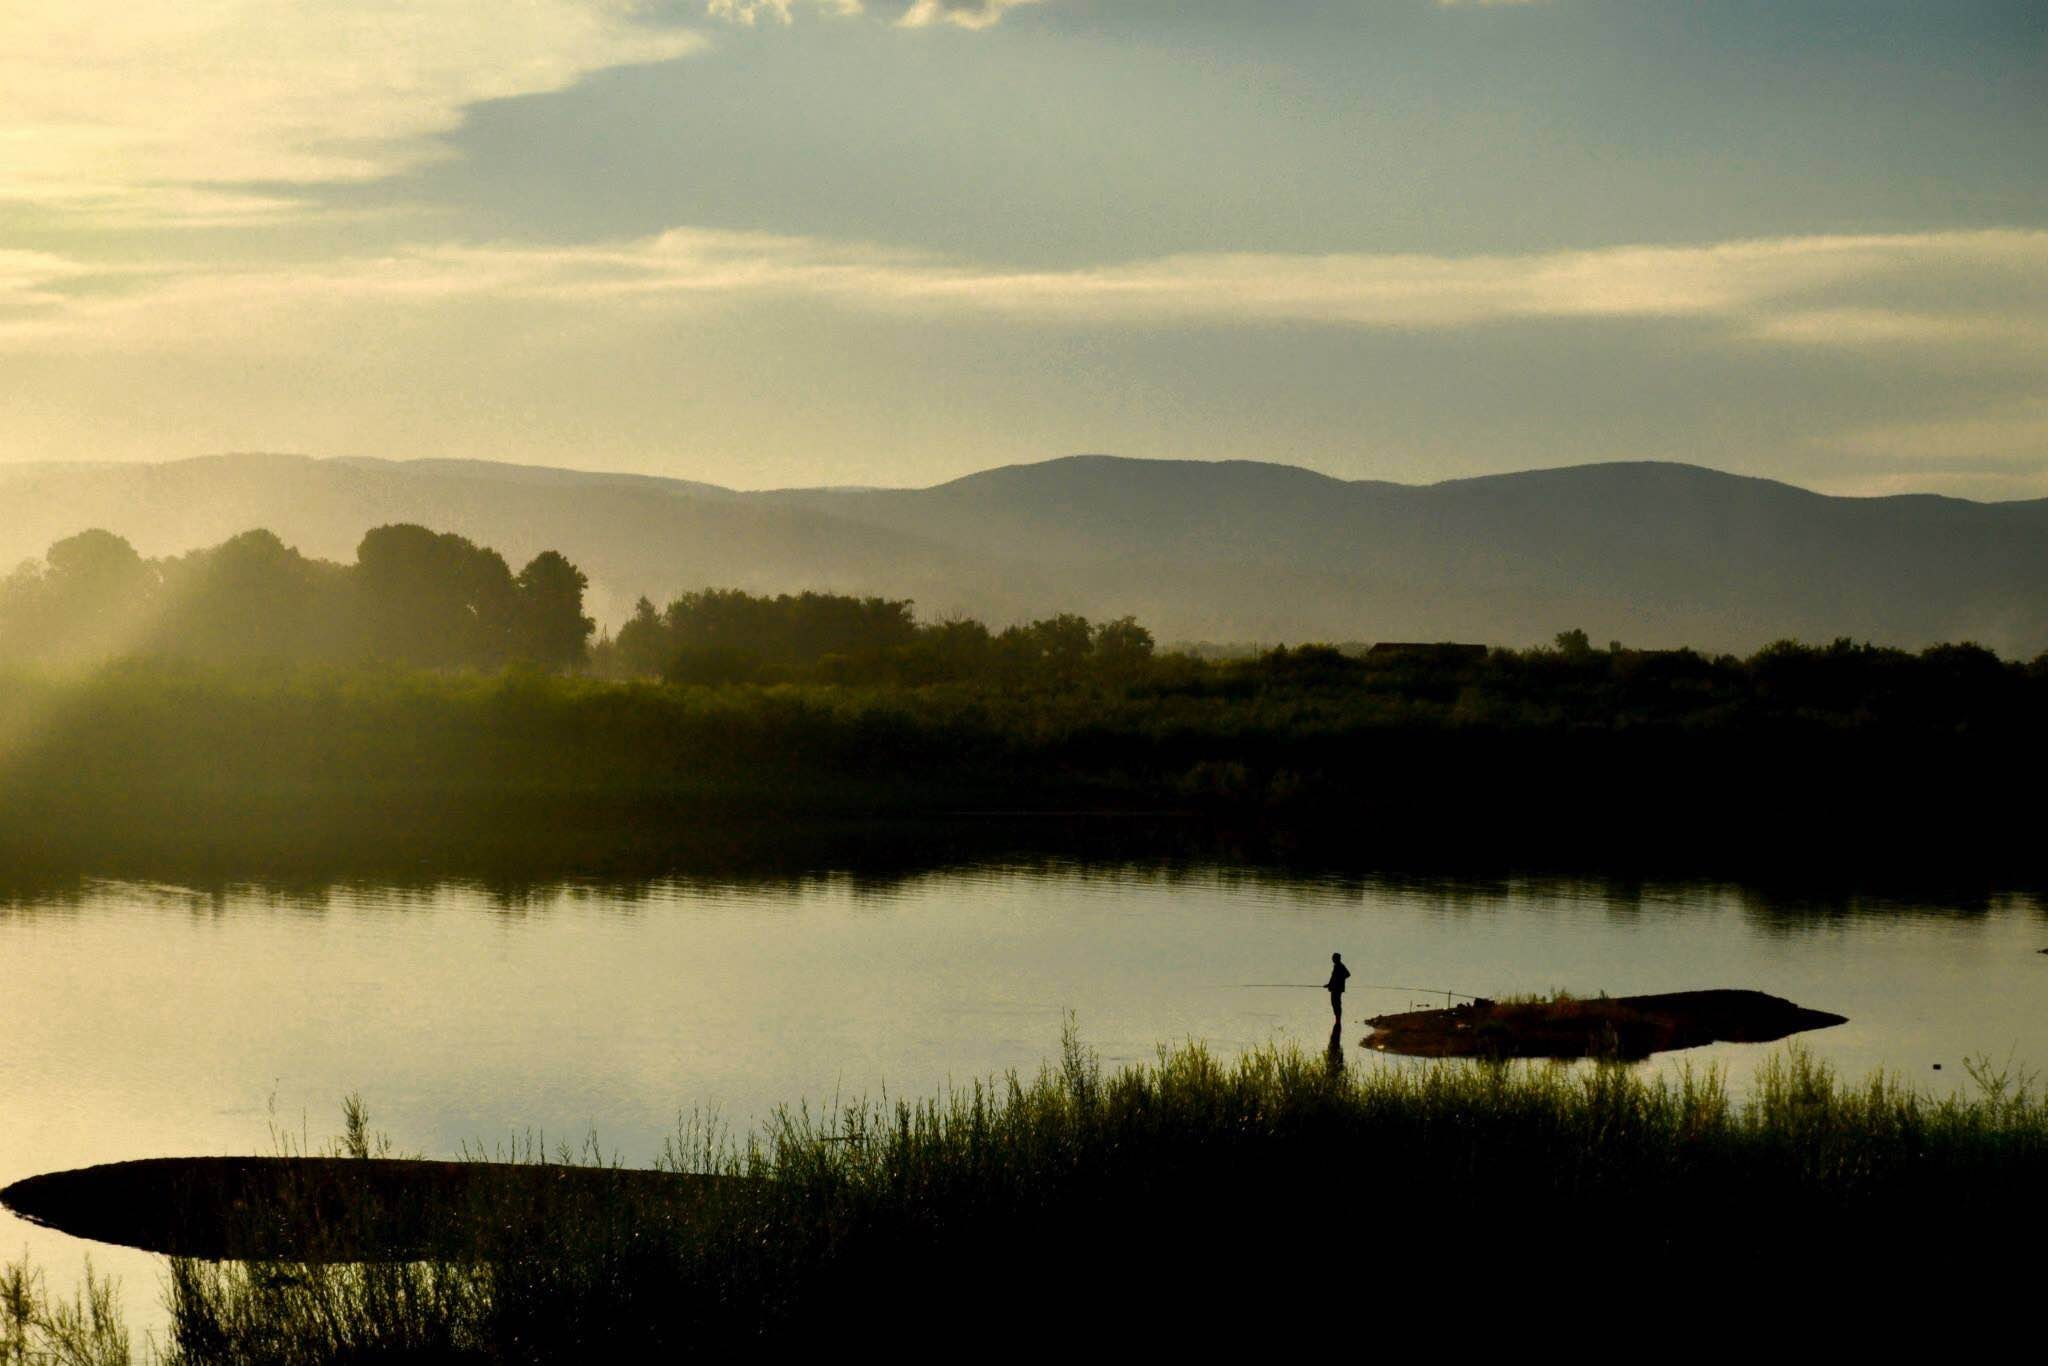 A tranquil shot of a lake with a silhouette of a lone fisherman in knee-high water